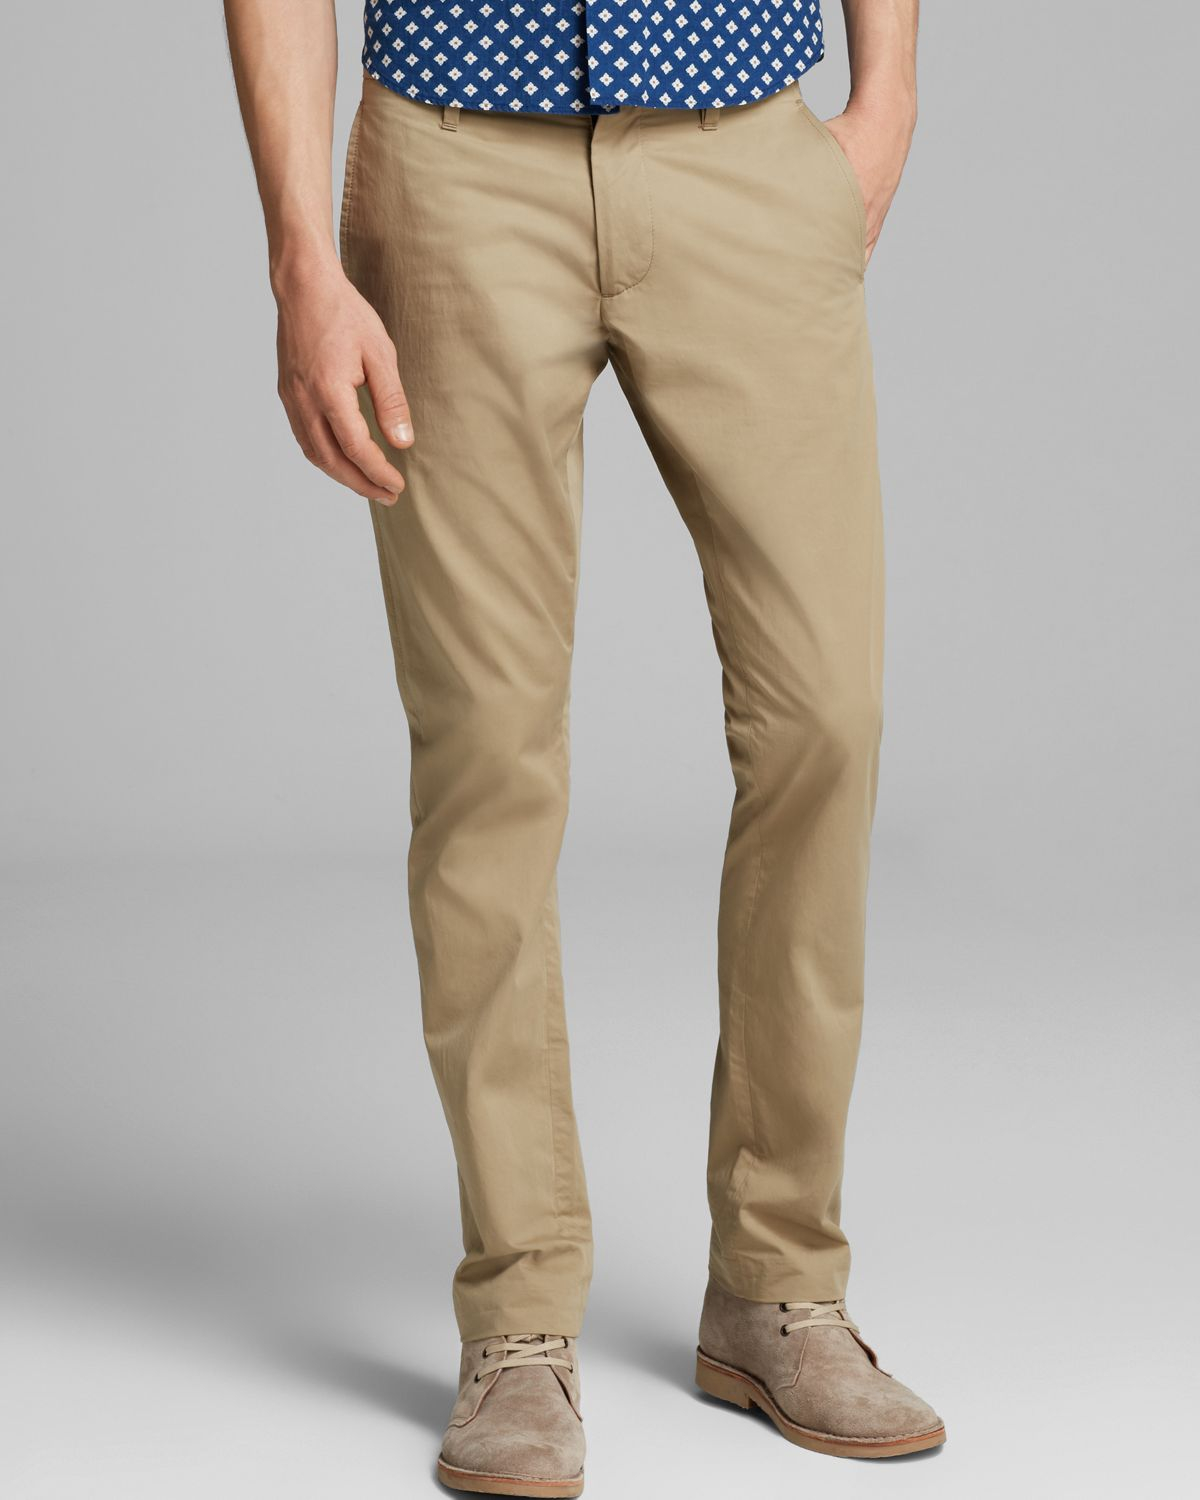 Free shipping BOTH ways on Pants, Khaki, Men, from our vast selection of styles. Fast delivery, and 24/7/ real-person service with a smile. Click or call